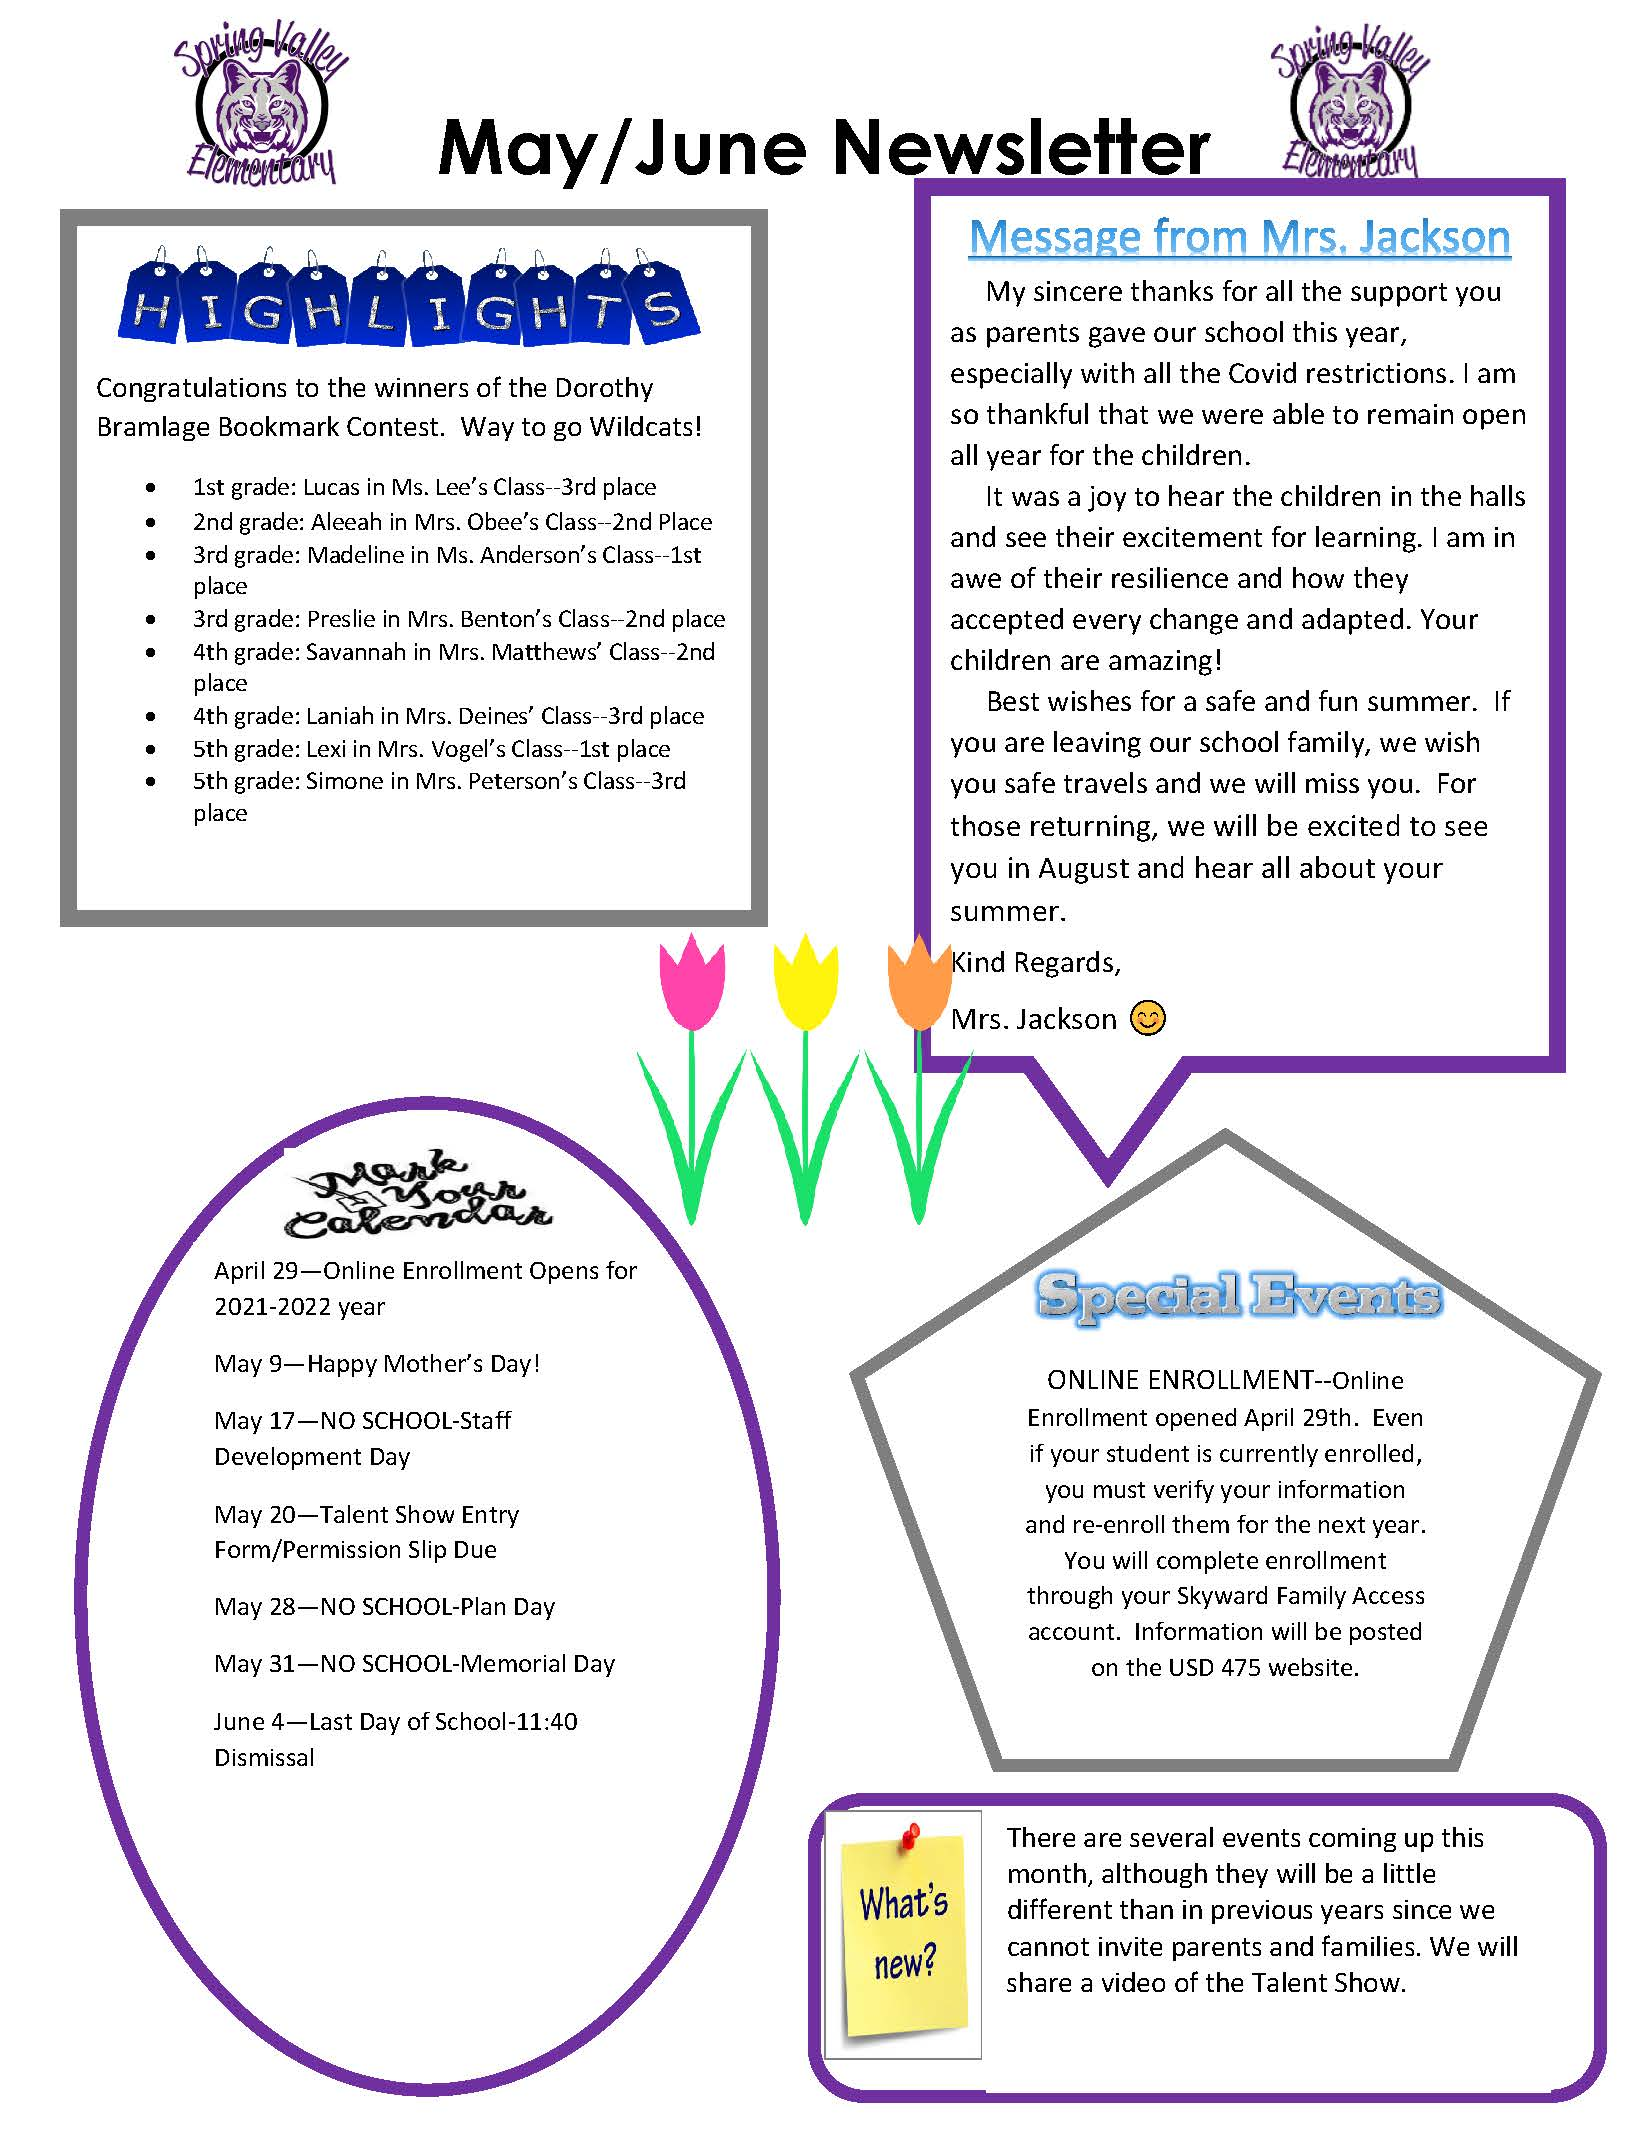 Photograph of May/June Newsletter